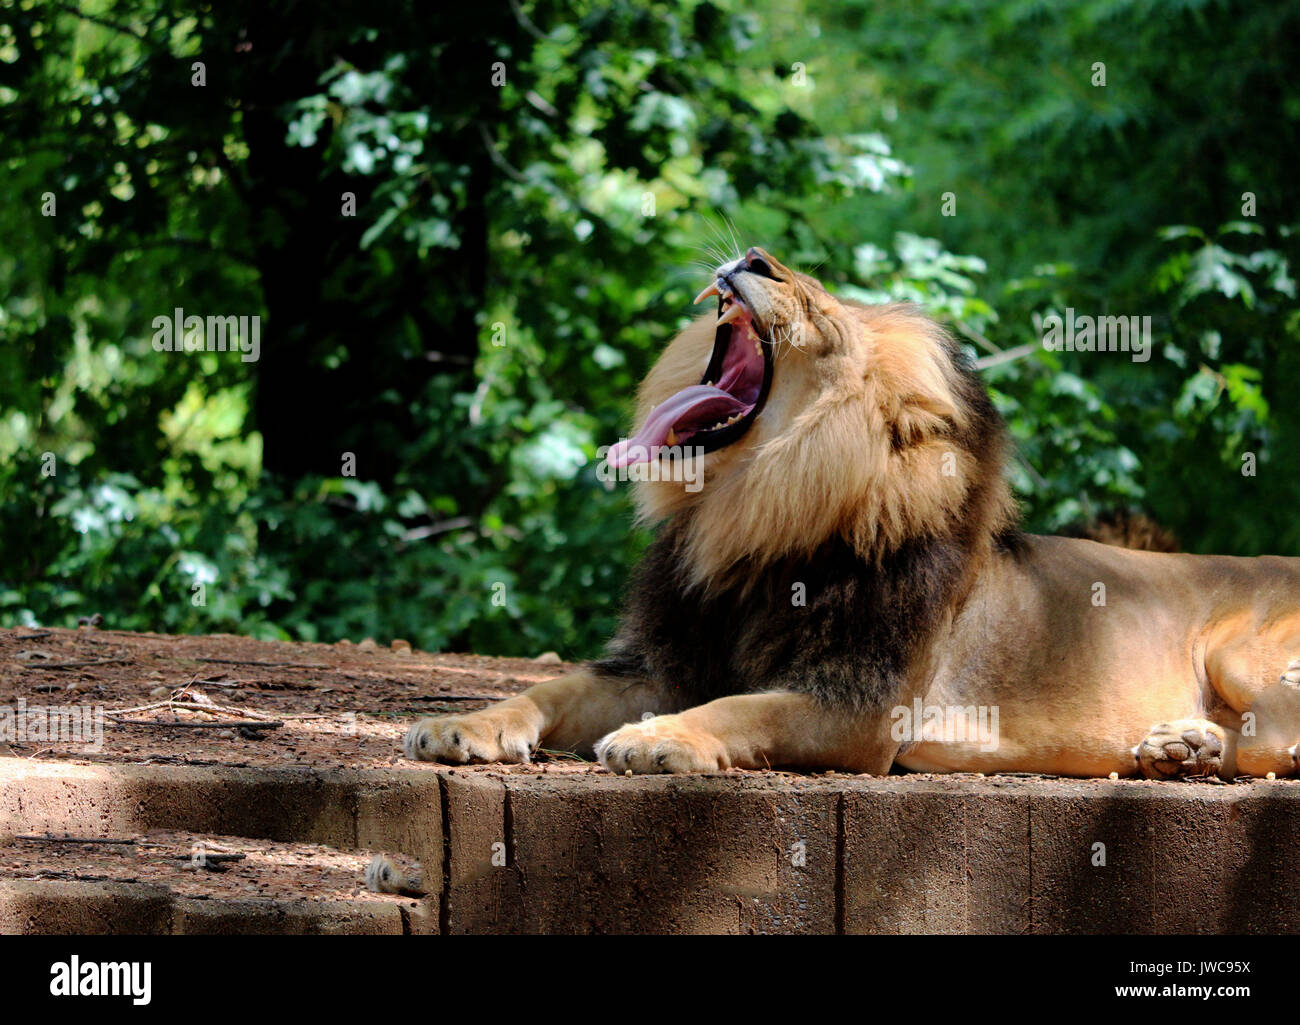 A Lion Yawning Relaxing in his Habitat with A Leafy Green Background. - Stock Image